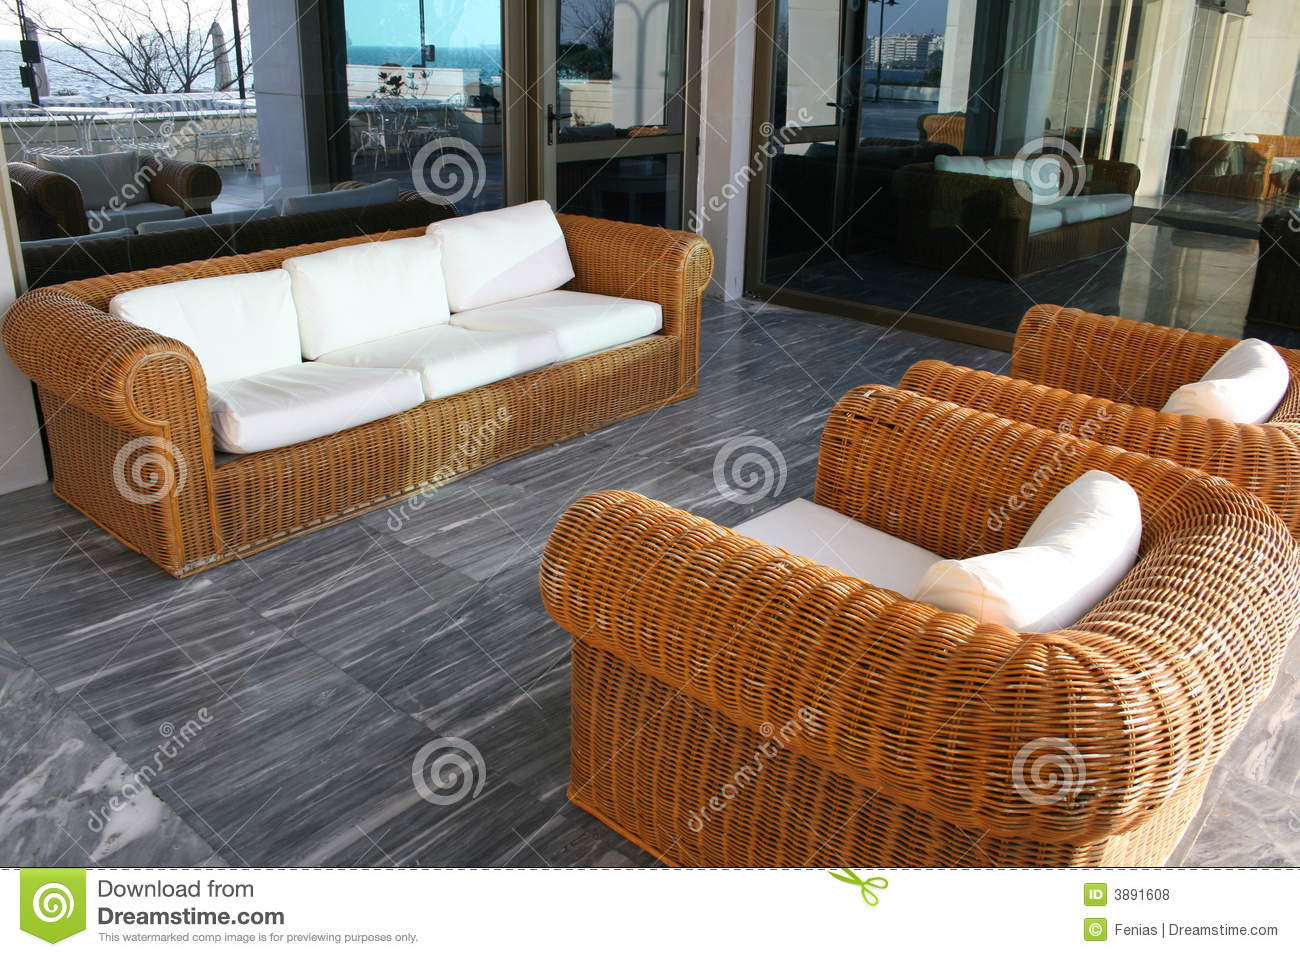 Uncategorized Bamboo Couch bamboo sofa stock photo image of floor outside 3891608 royalty free download sofa